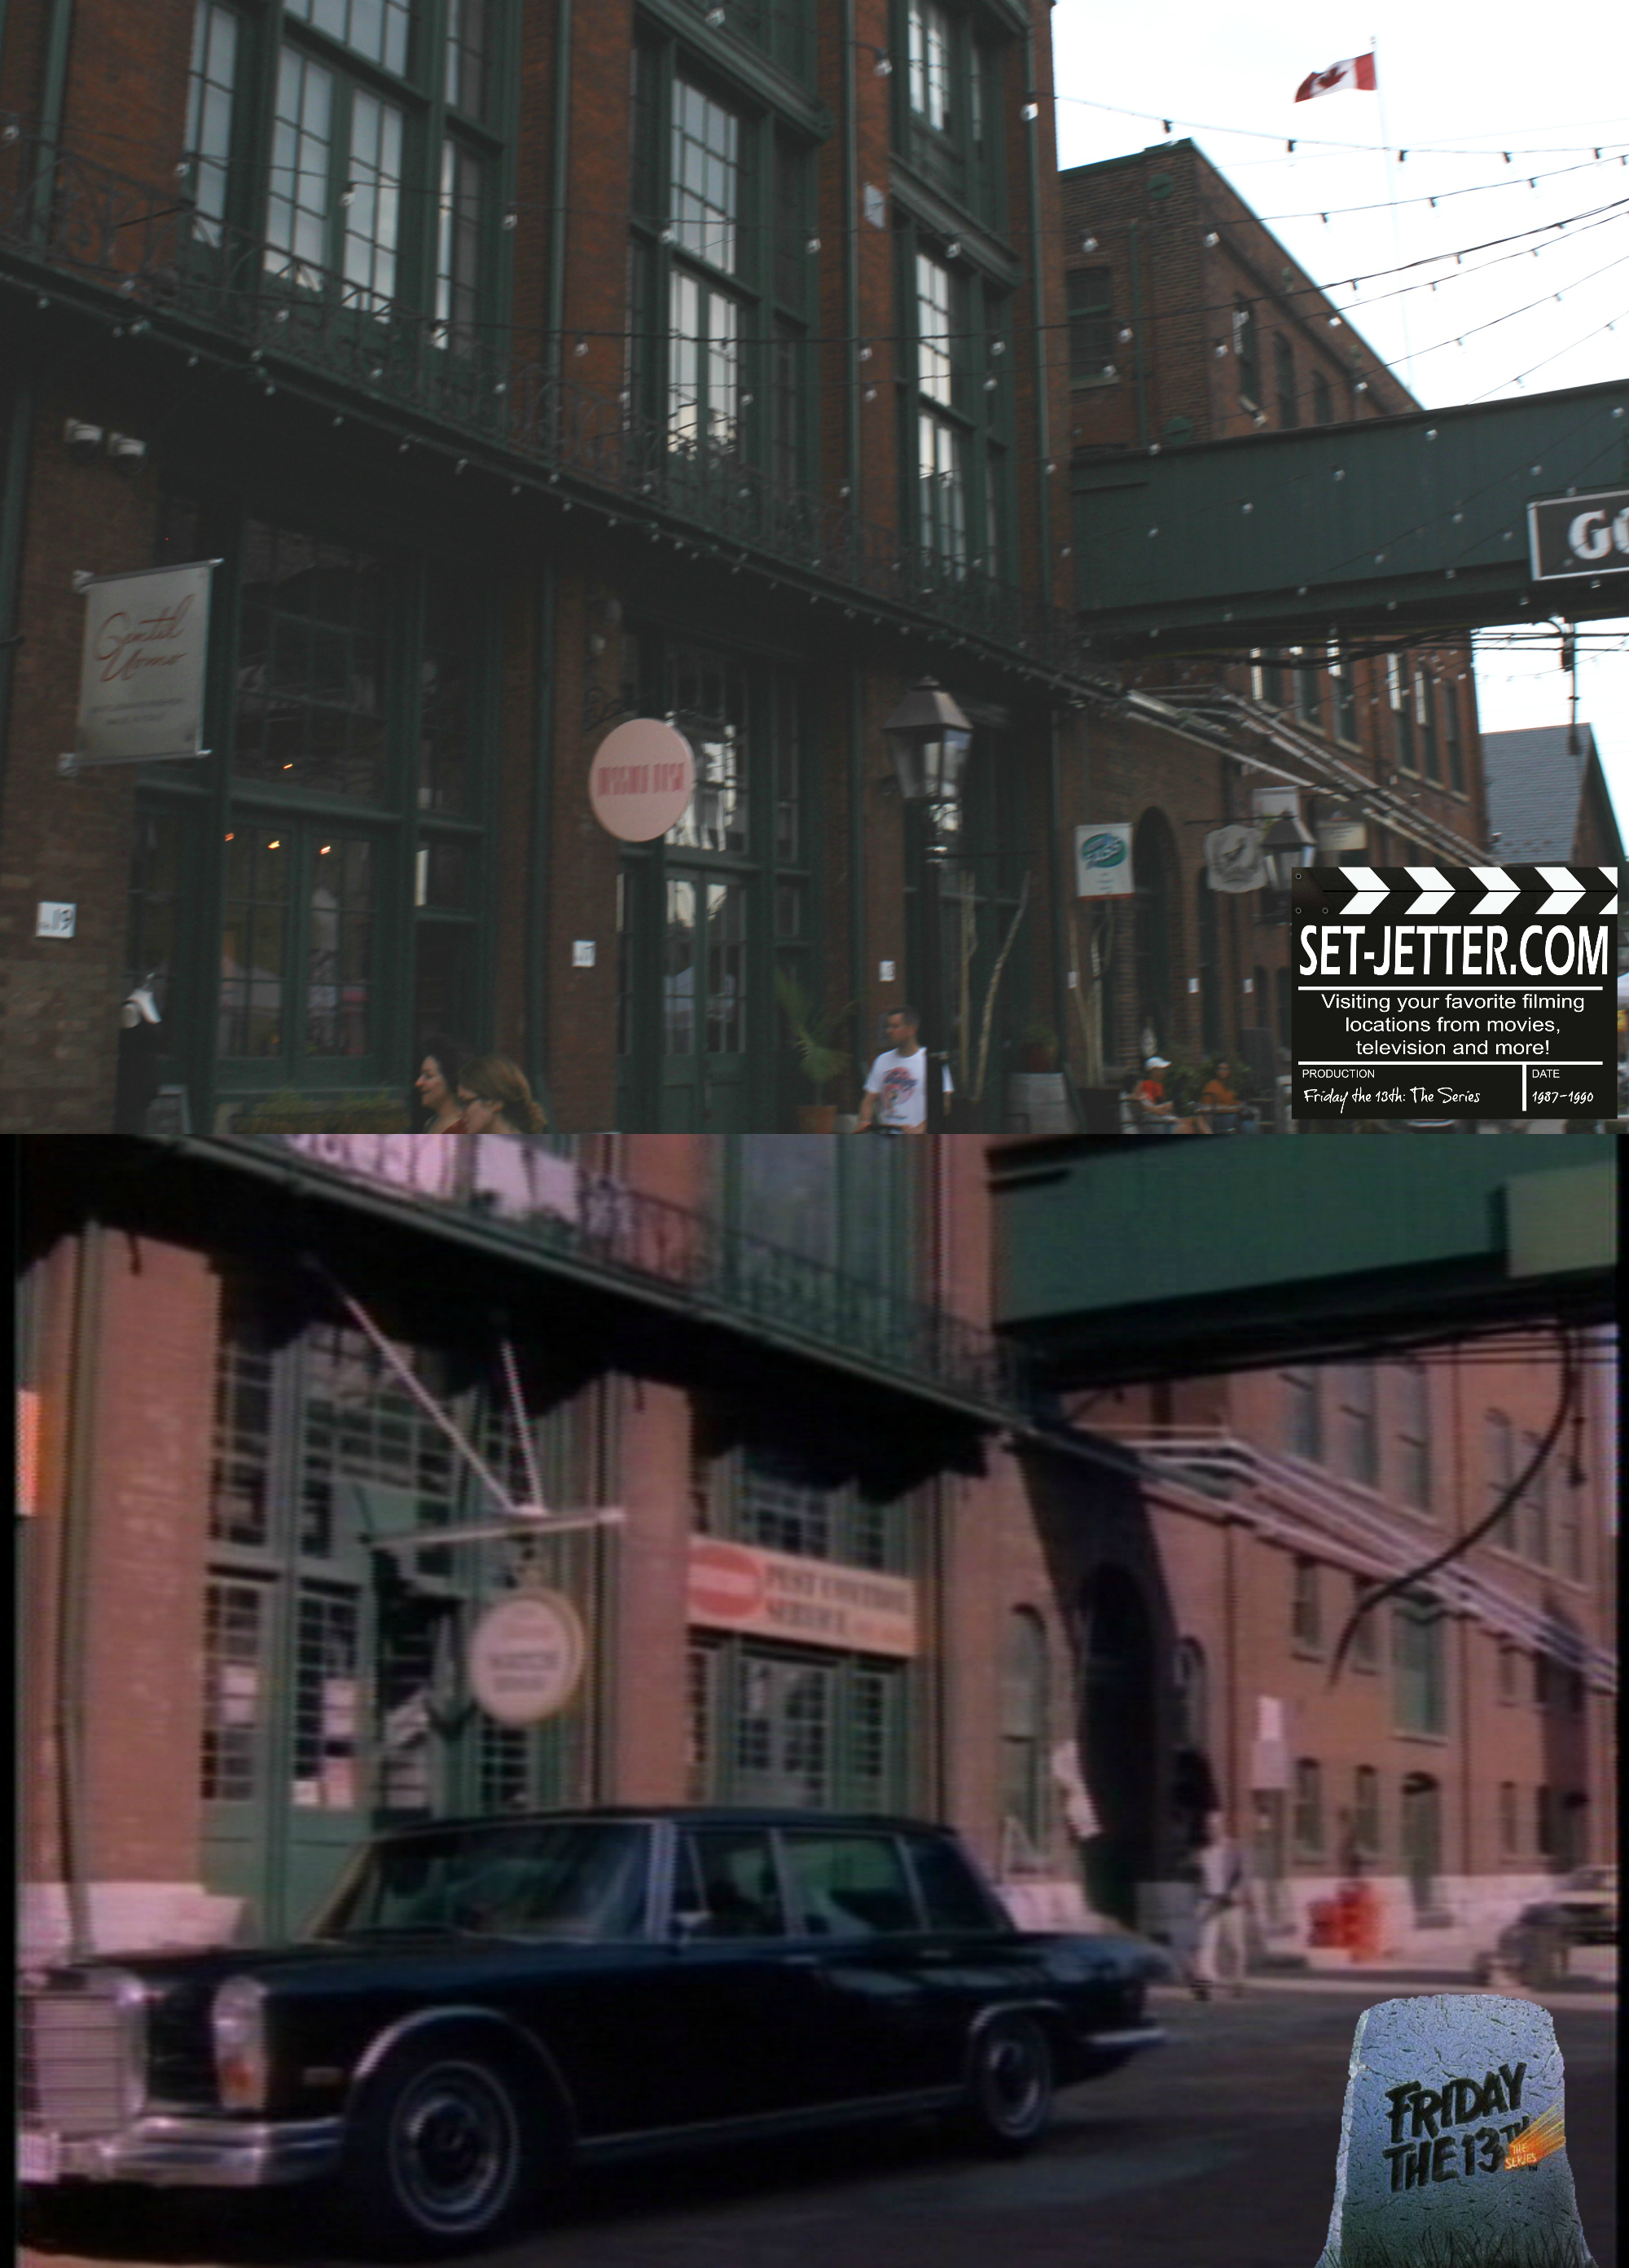 Friday the 13th The Series comparison 09.jpg